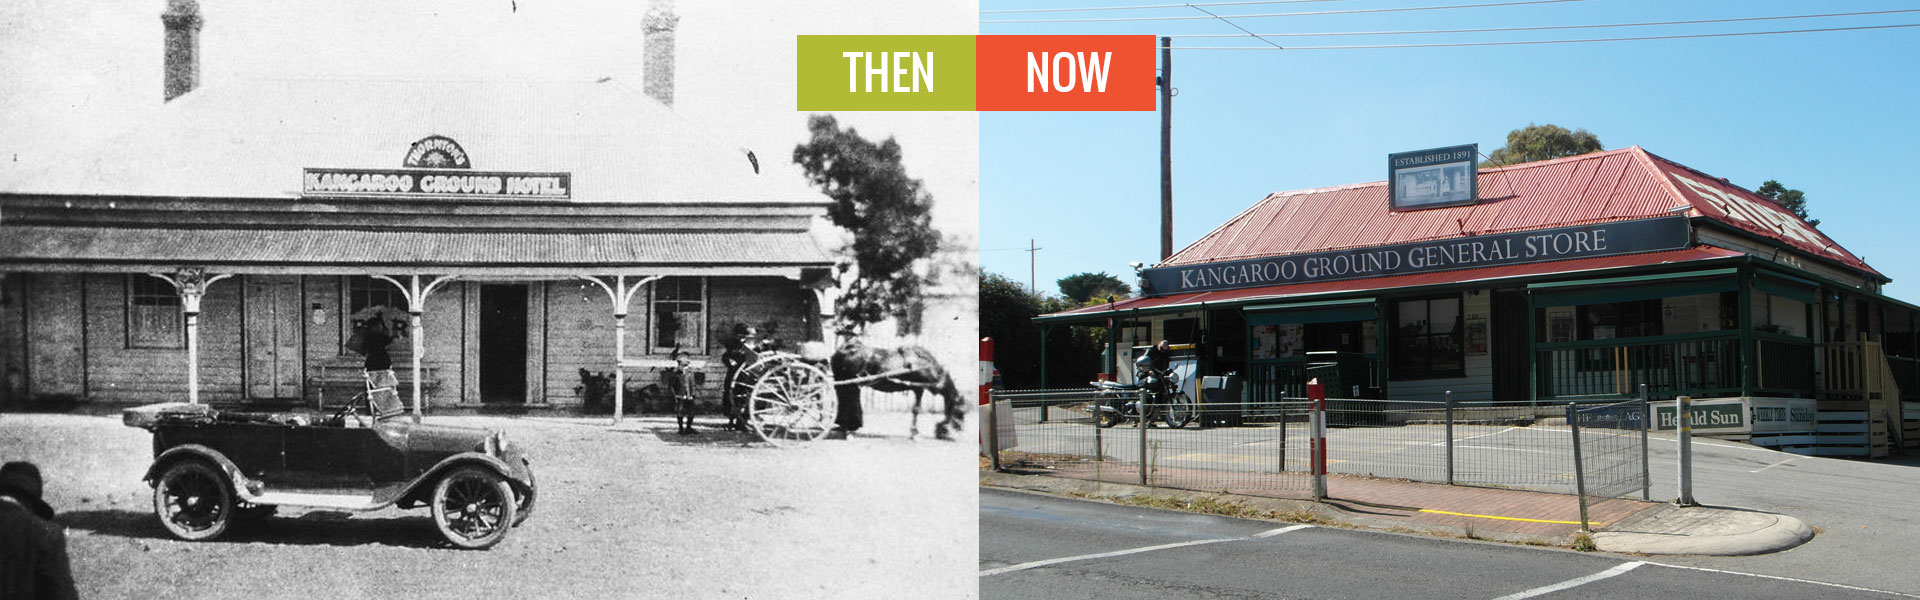 kangaroo ground store history